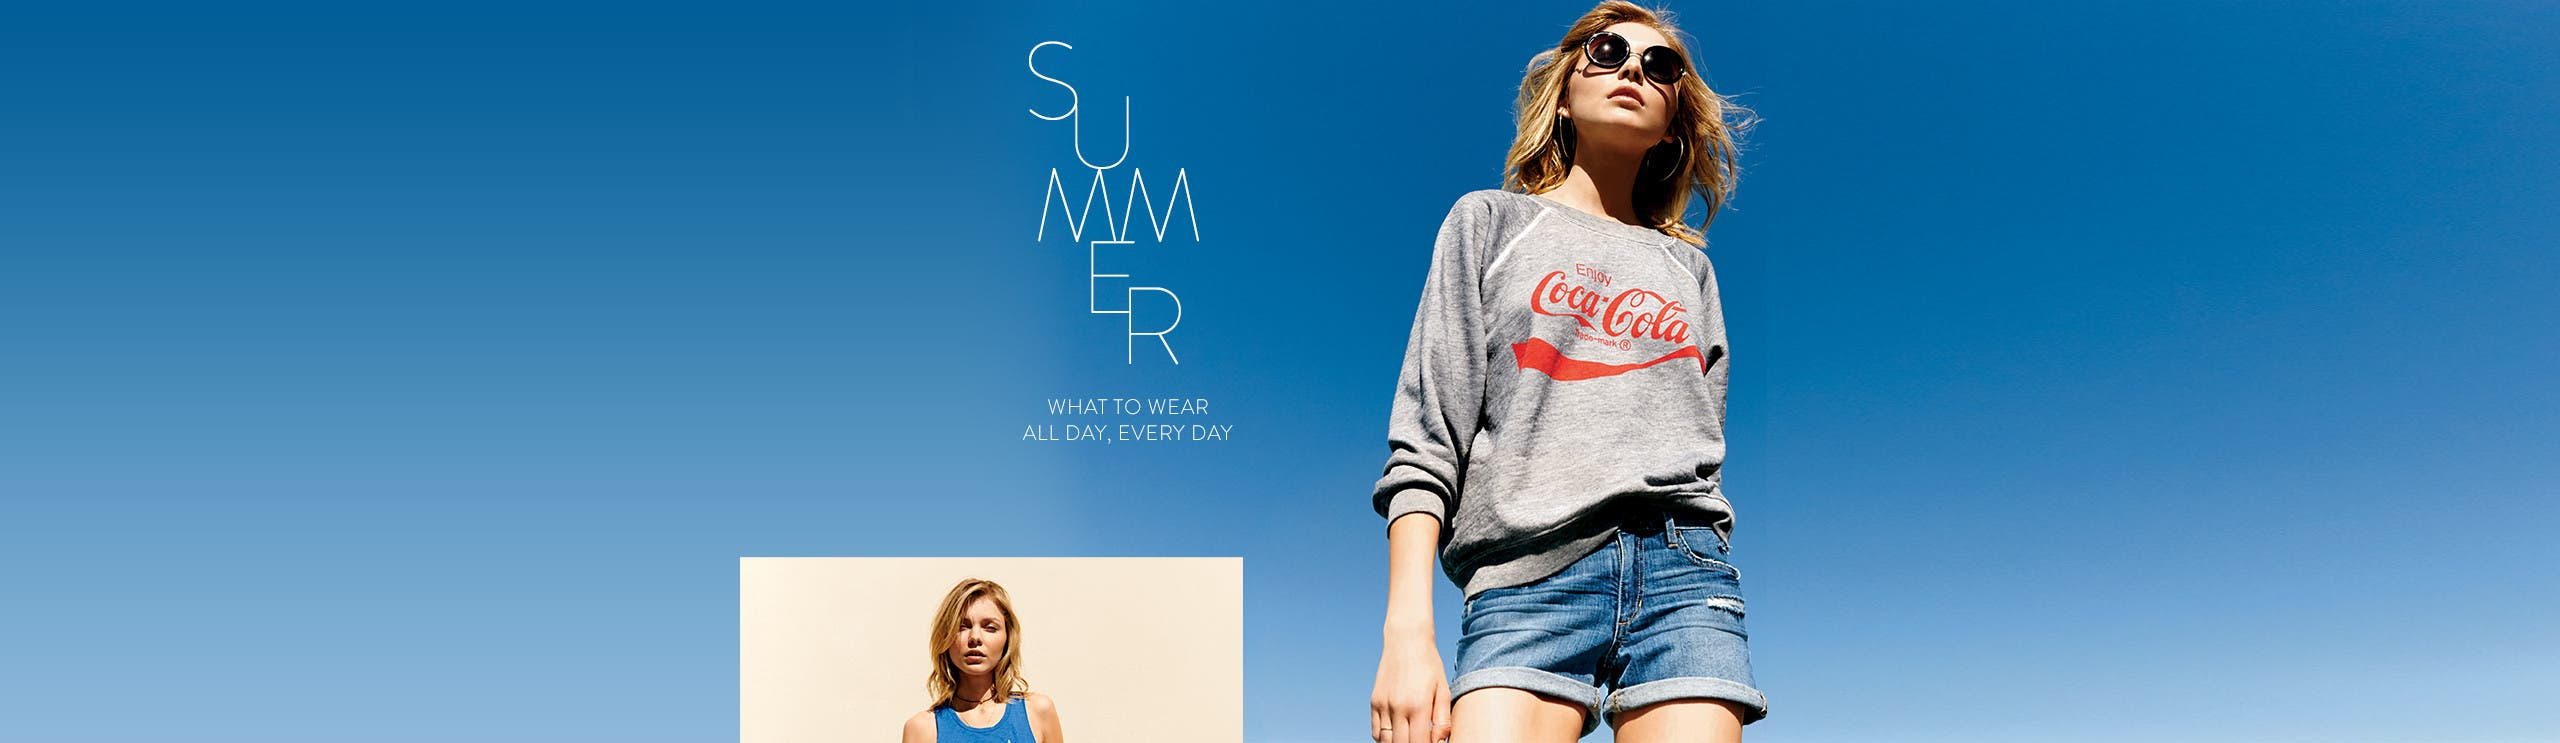 Summer: what to wear all day, every day.